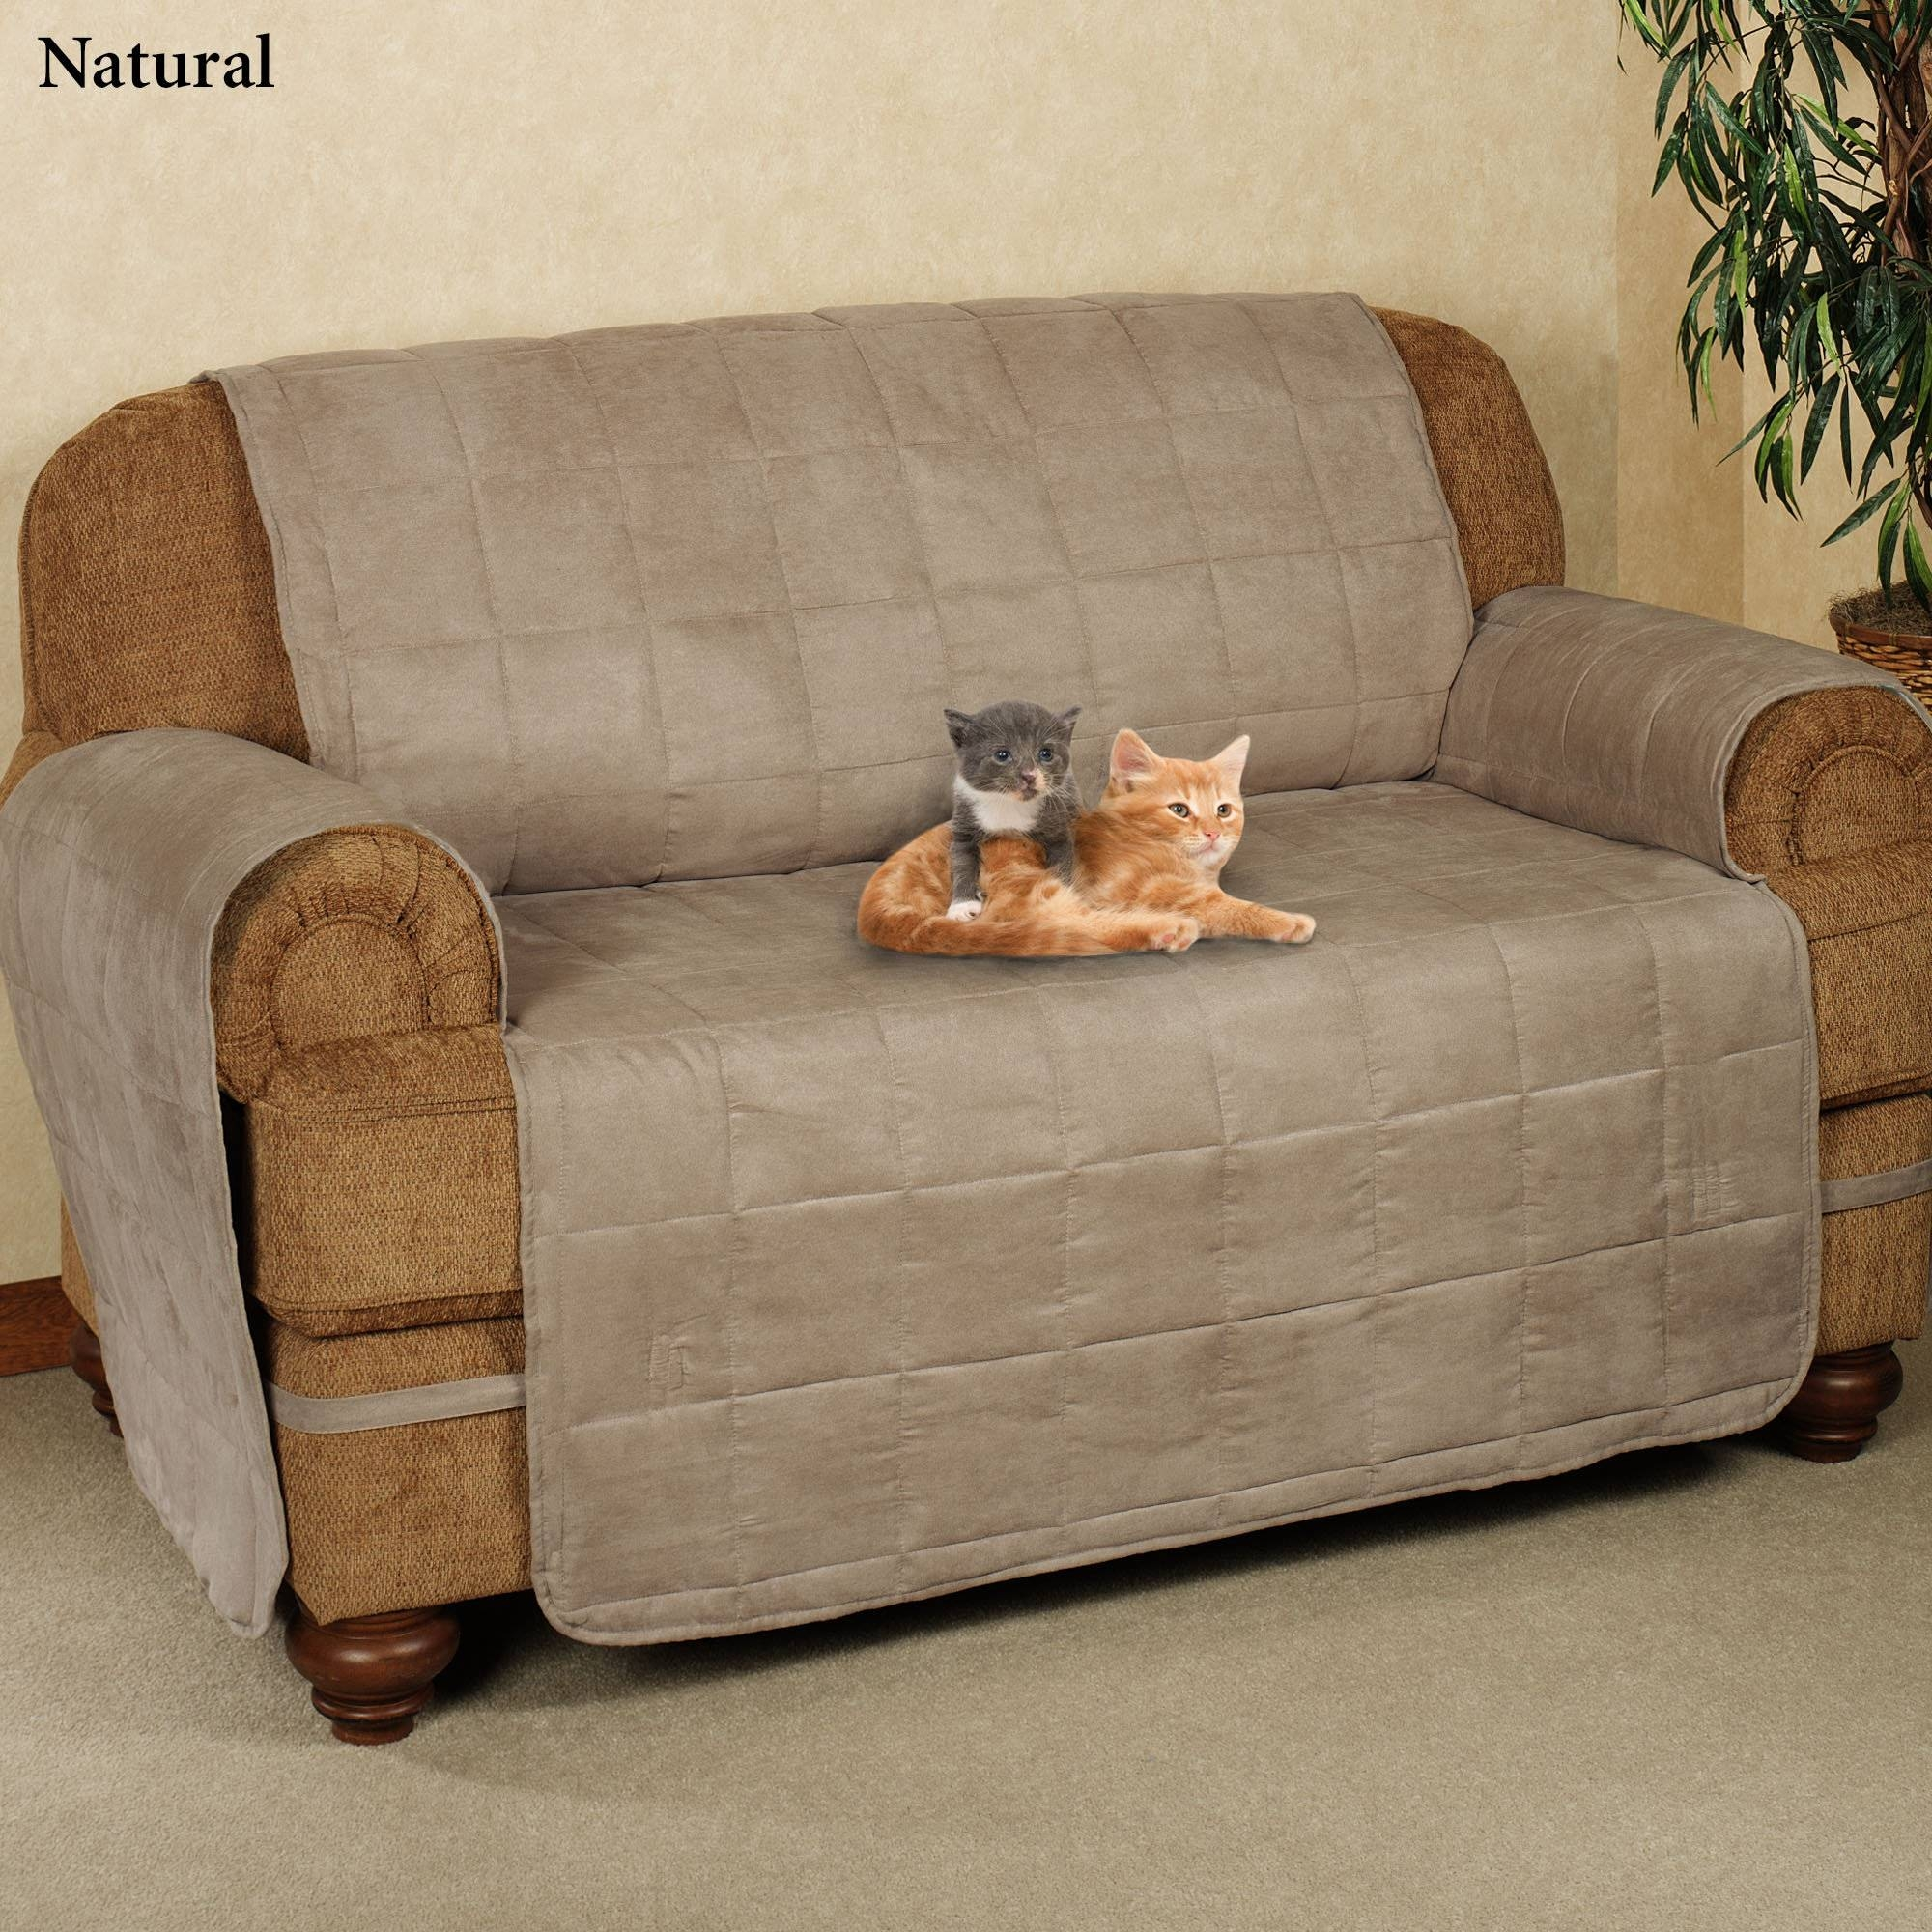 Chaise Lounge Sofa Walmart Chaise Lounge Slipcover Couch Covers